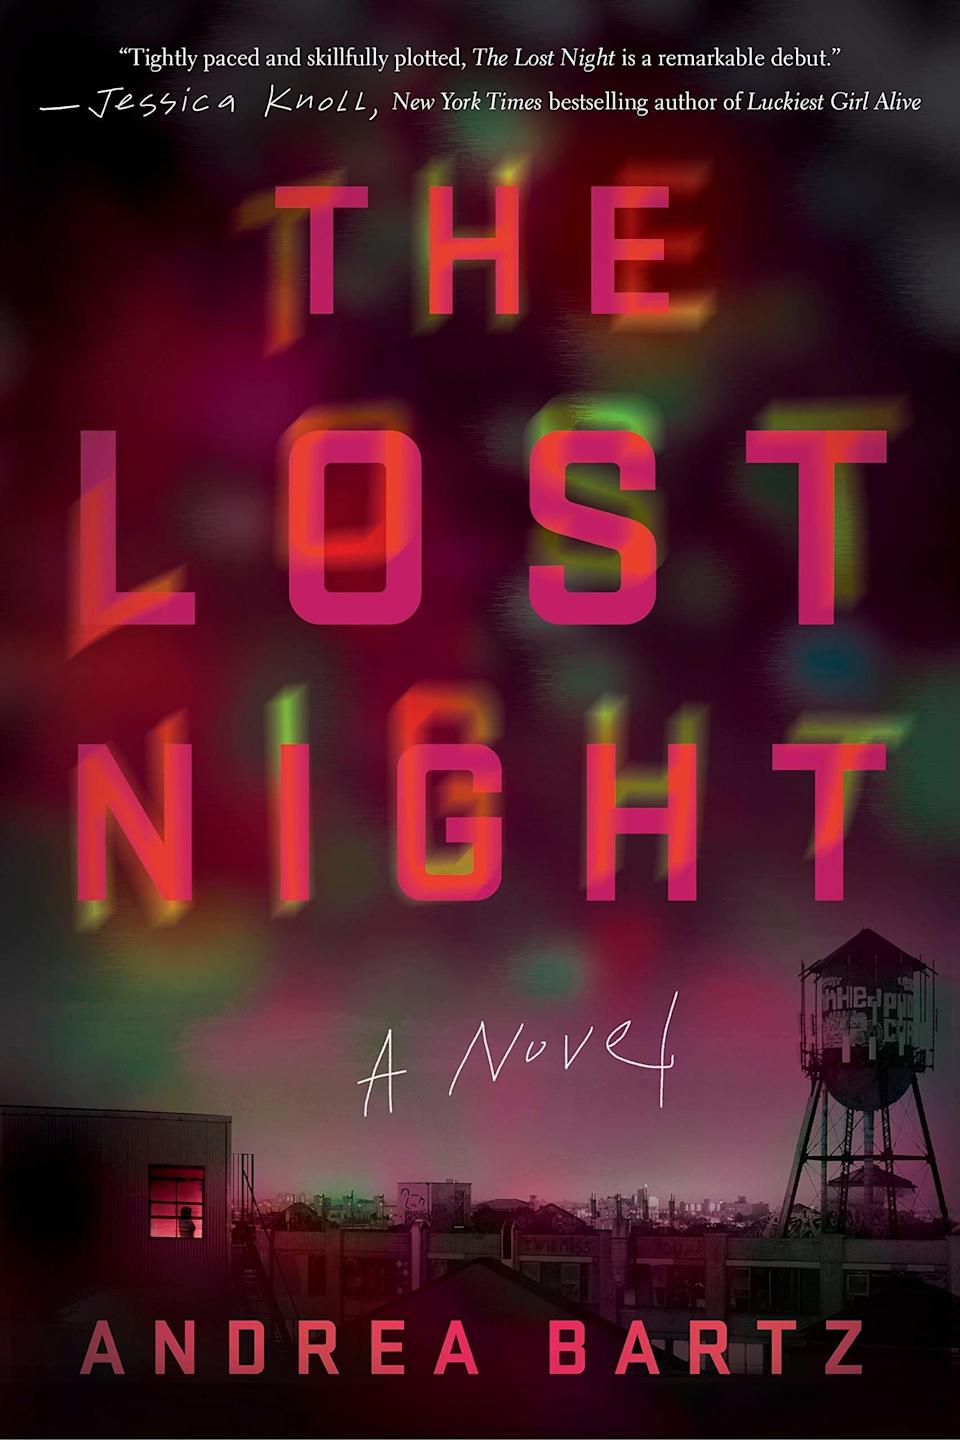 If you couldn't get enough of TBS's <em>Search Party,</em> or more recently Netflix's <em>Russian Doll,</em> pick up a copy of <em>The Lost Night.</em> Much like these two shows, this book also centers on a young woman posing as an amateur detective to solve a murder. Back in 2009 the novel's protagonist, Lindsay, partied with her friends and the queen bee of their group, Edie. After a long night of binge drinking, Lindsay woke up to find Edie dead of an apparent suicide. Now, a decade later, Lindsay discovers new evidence that could prove that Edie was murdered—and that Lindsay might have been involved. The rest of this haunting debut follows Lindsay as she tries to piece together what really happened on that awful, forgotten night.